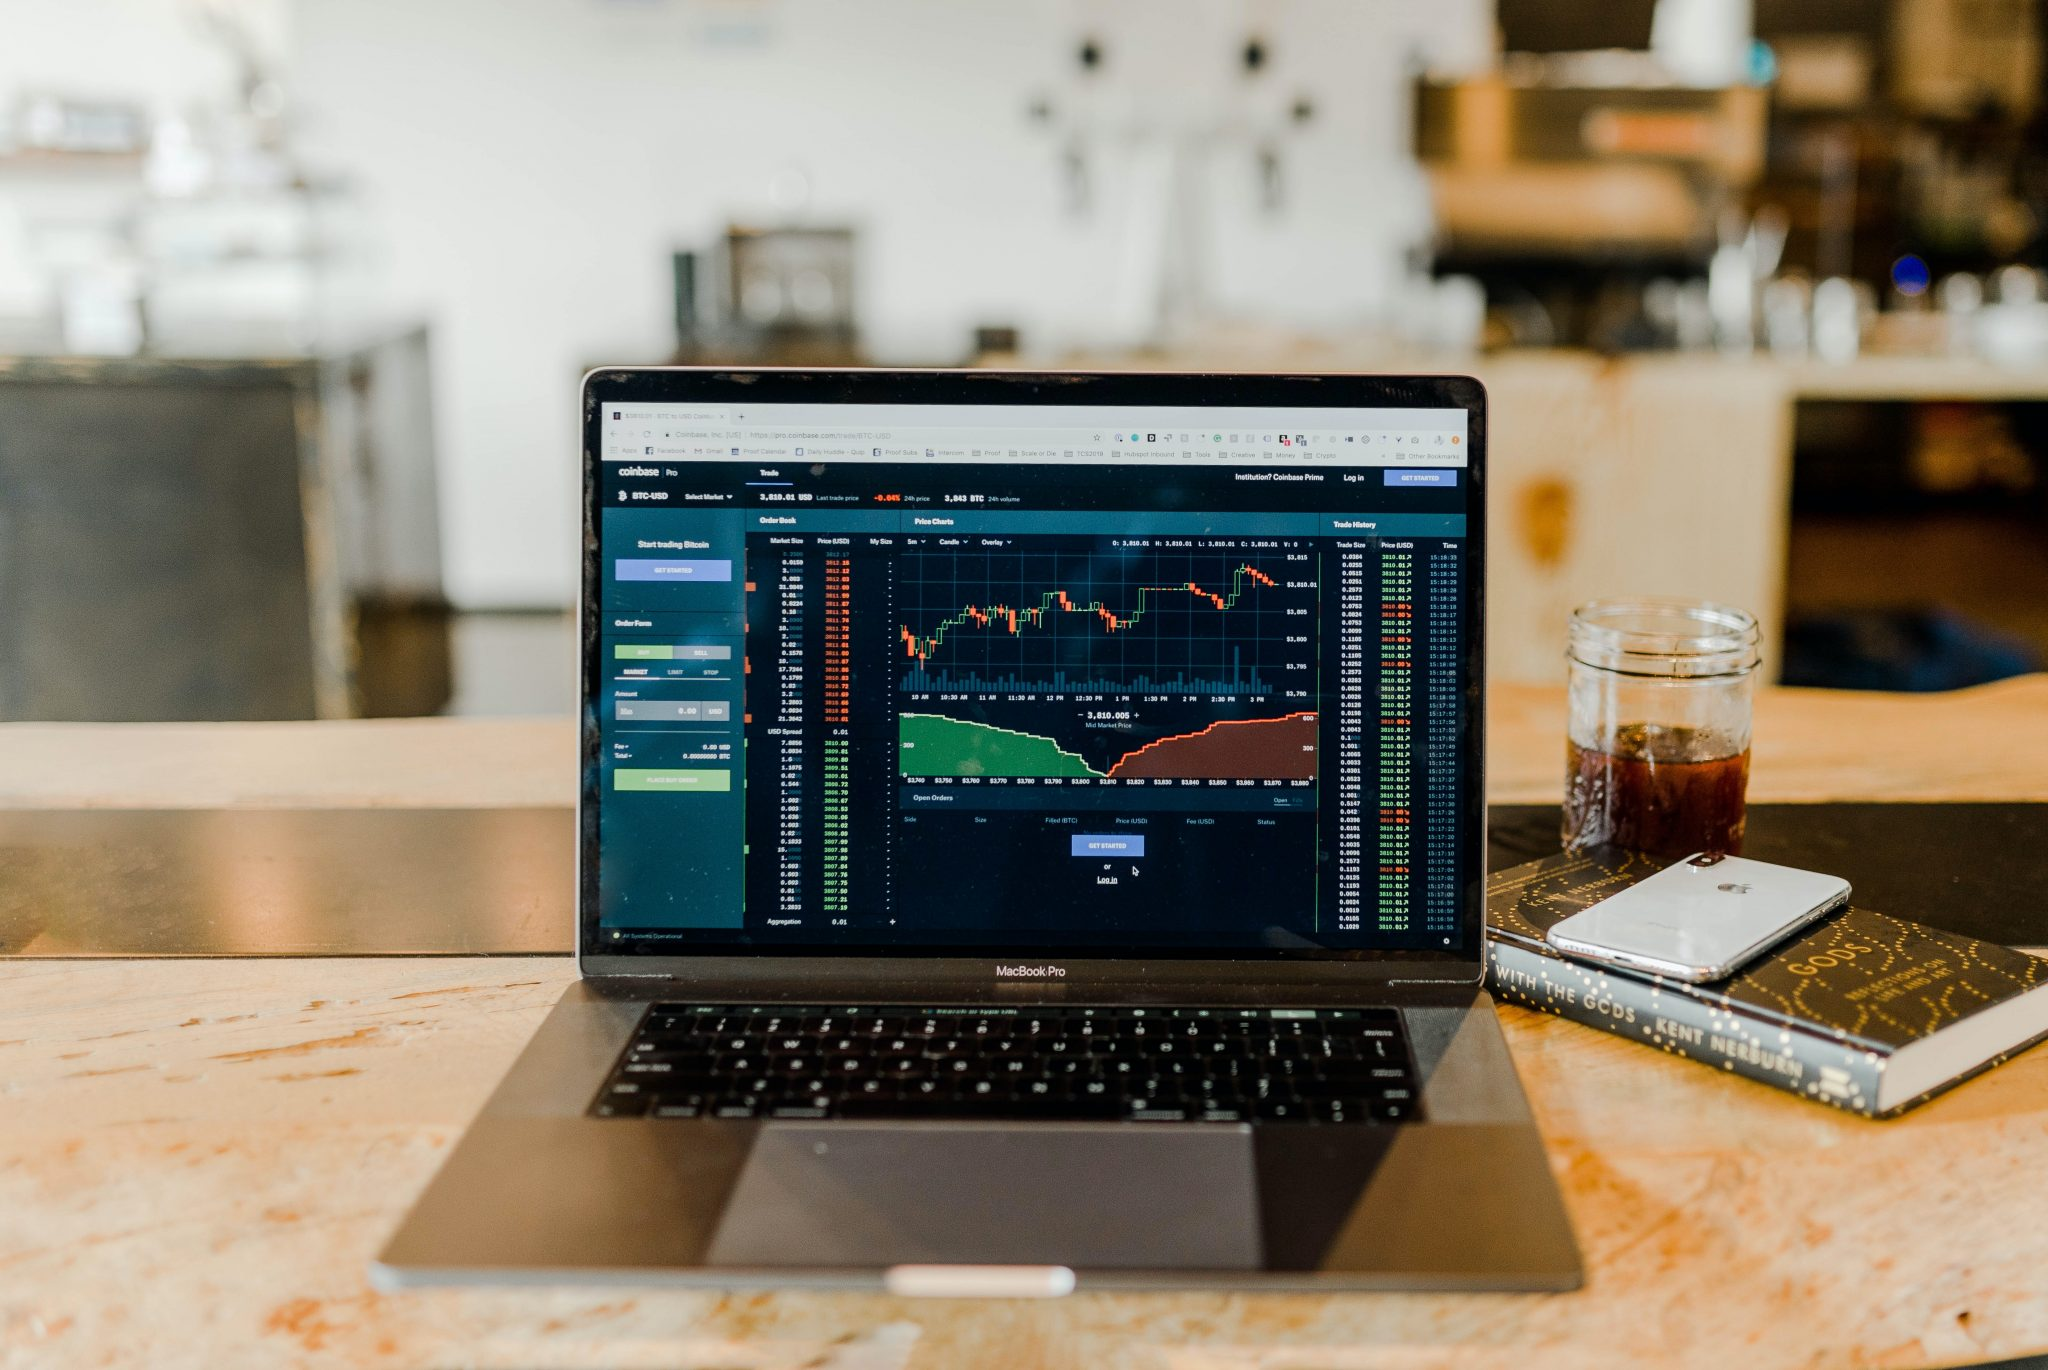 How do I invest in Stocks? A Beginners Guide